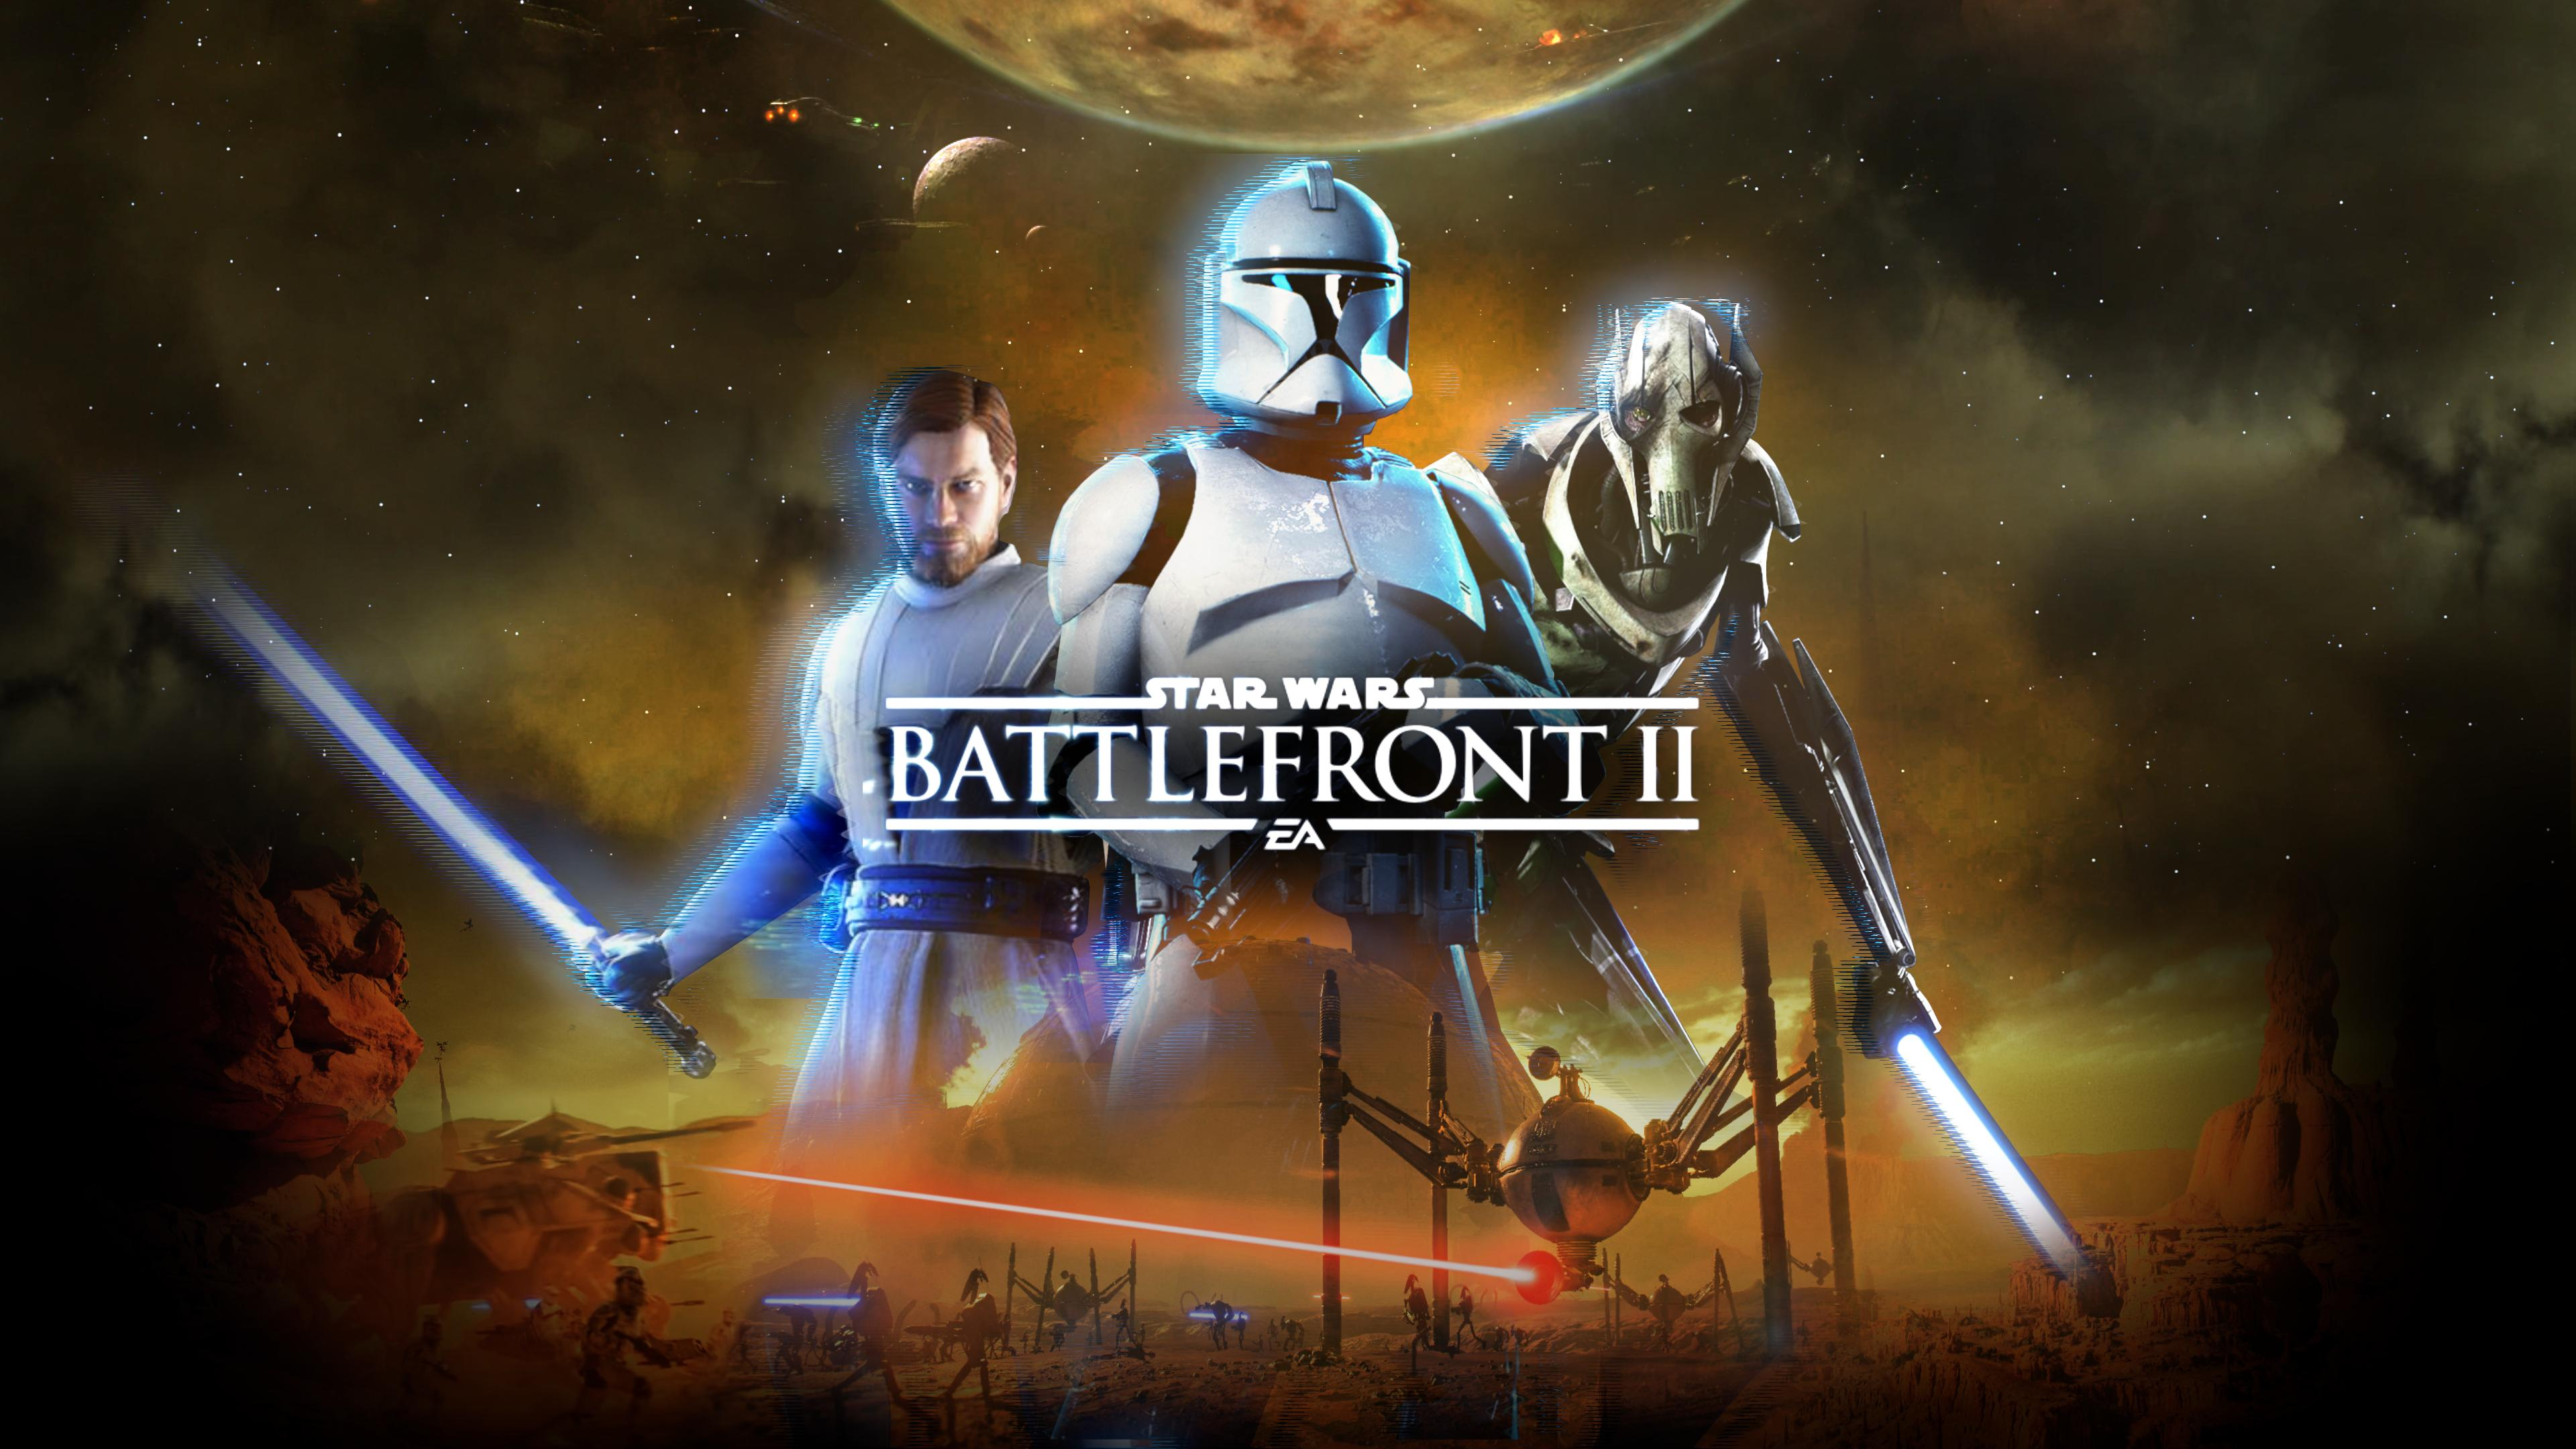 Star wars battlefront 2 image 1